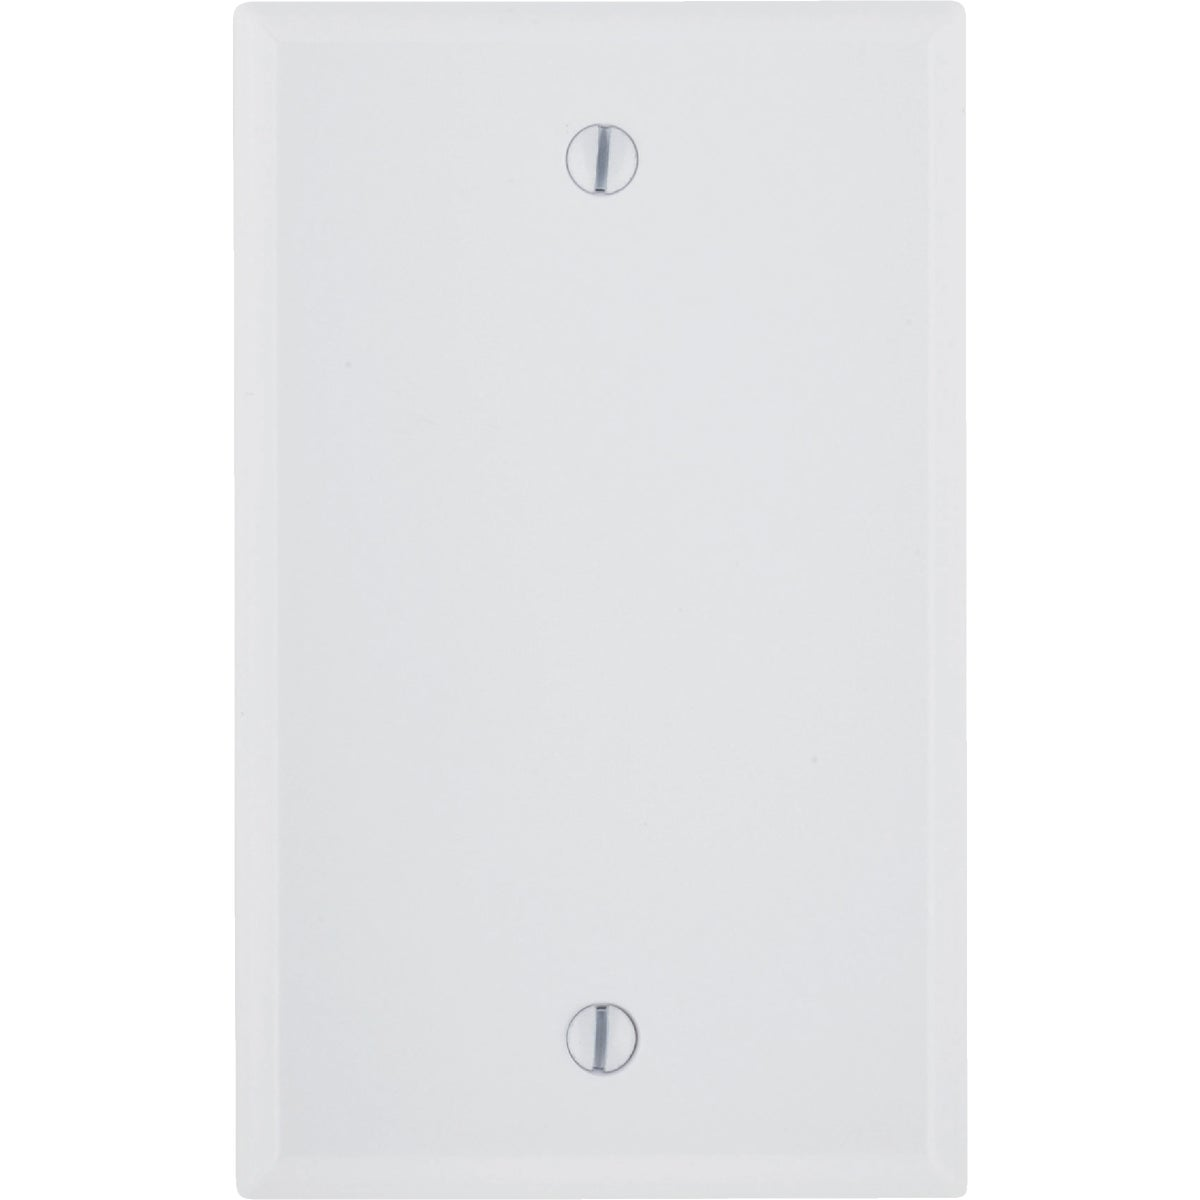 WHT BLANK WALL PLATE - 88014 by Leviton Mfg Co